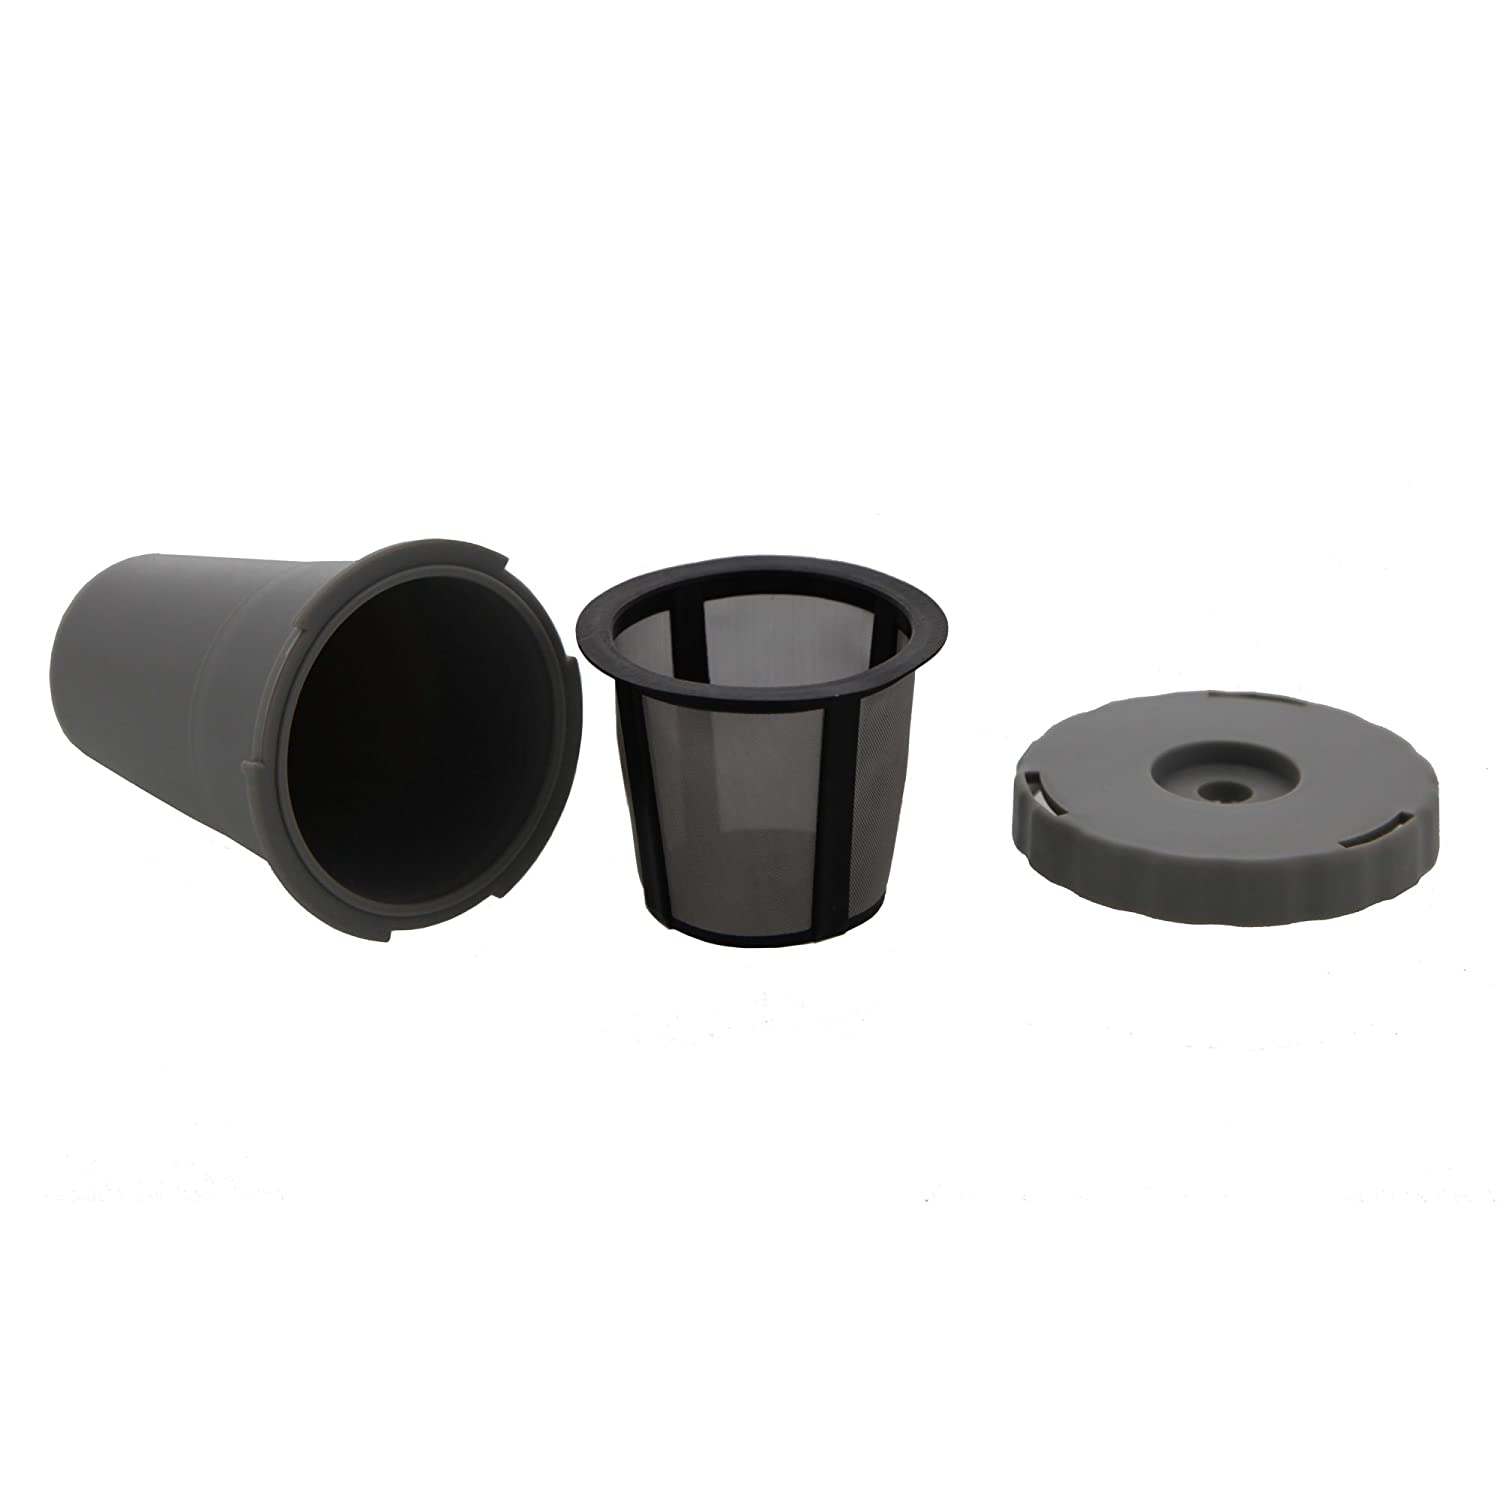 Keurig My K-Cup Reusable Coffee Holder & Filter Set